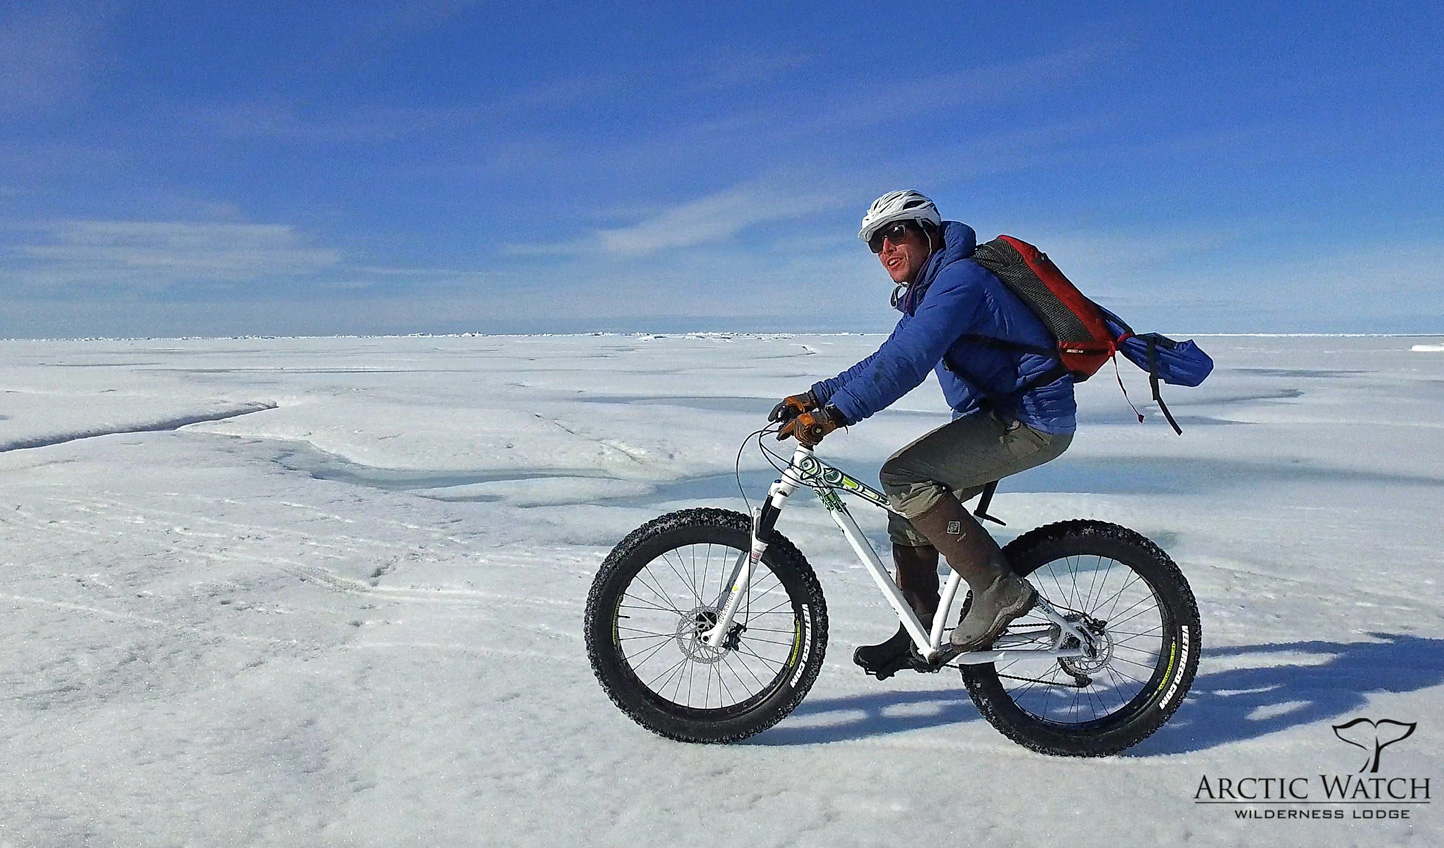 Fatbike across the frozen ice flows